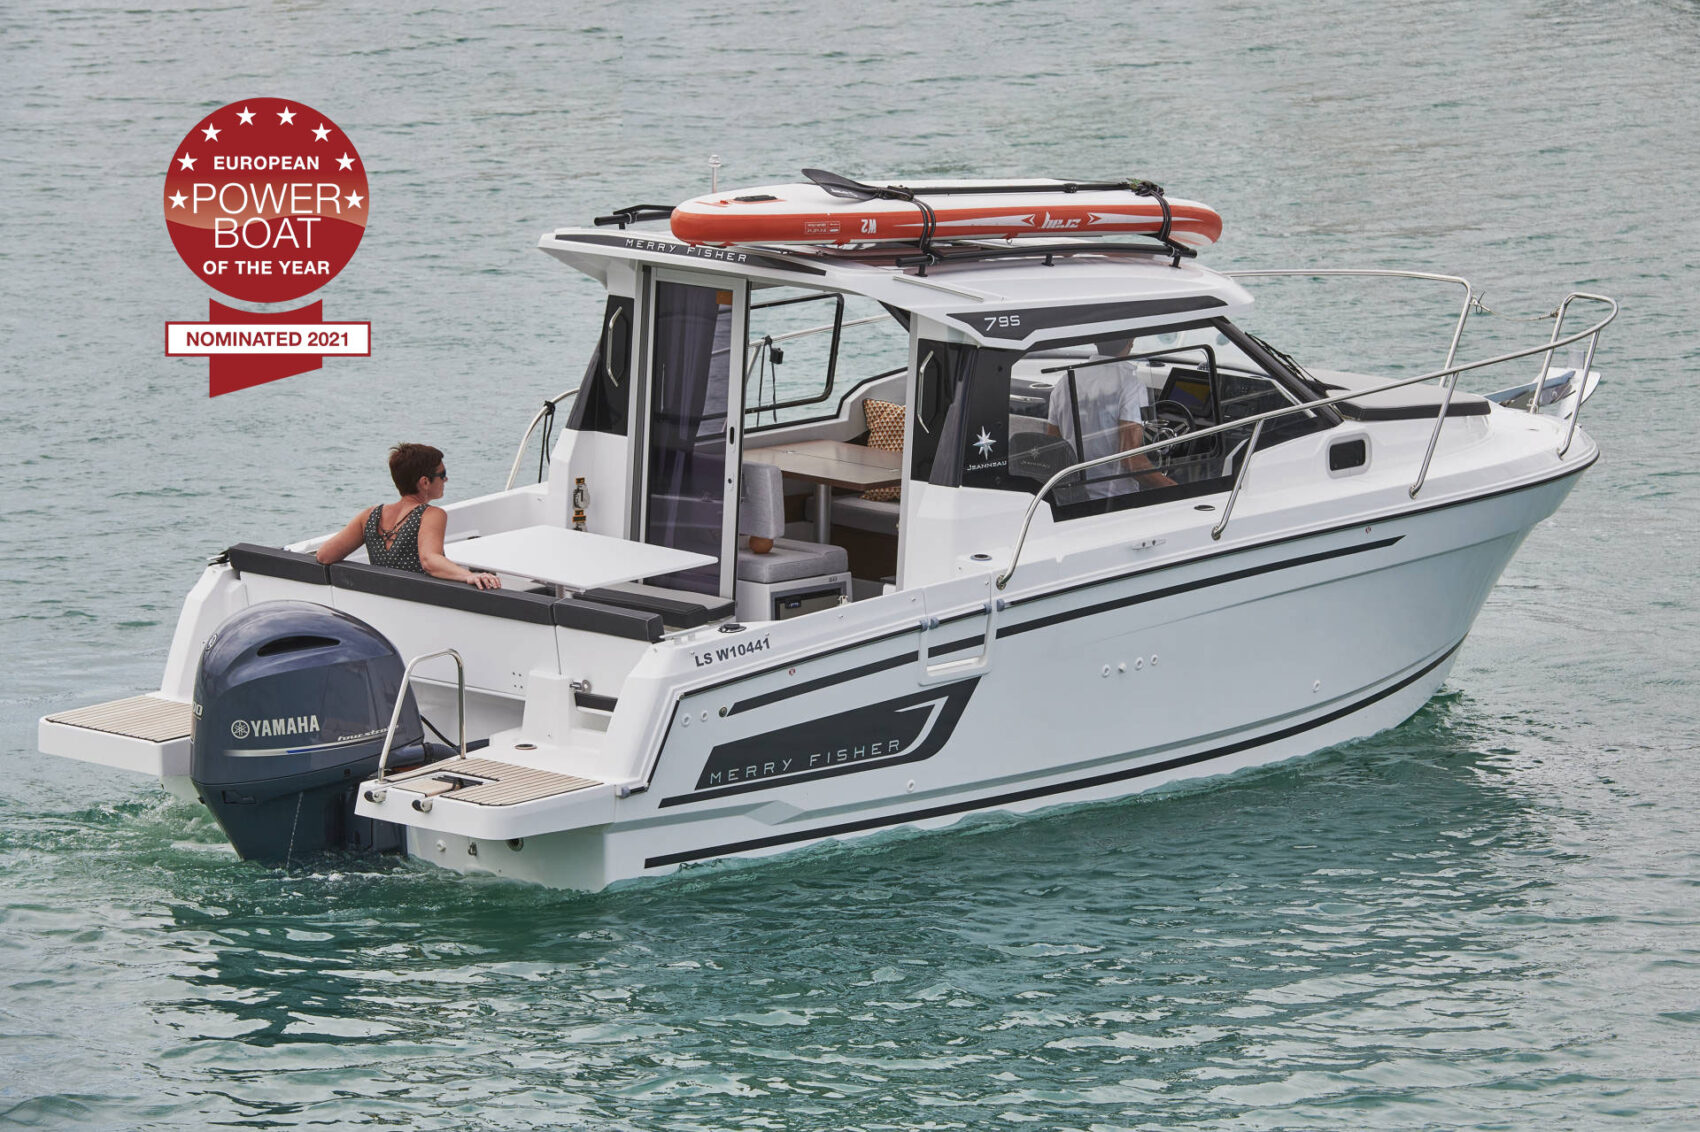 MERRY FISHER 795 SERIES 2: EUROPEAN POWERBOAT OF THE YEAR 2021 NOMINATION!